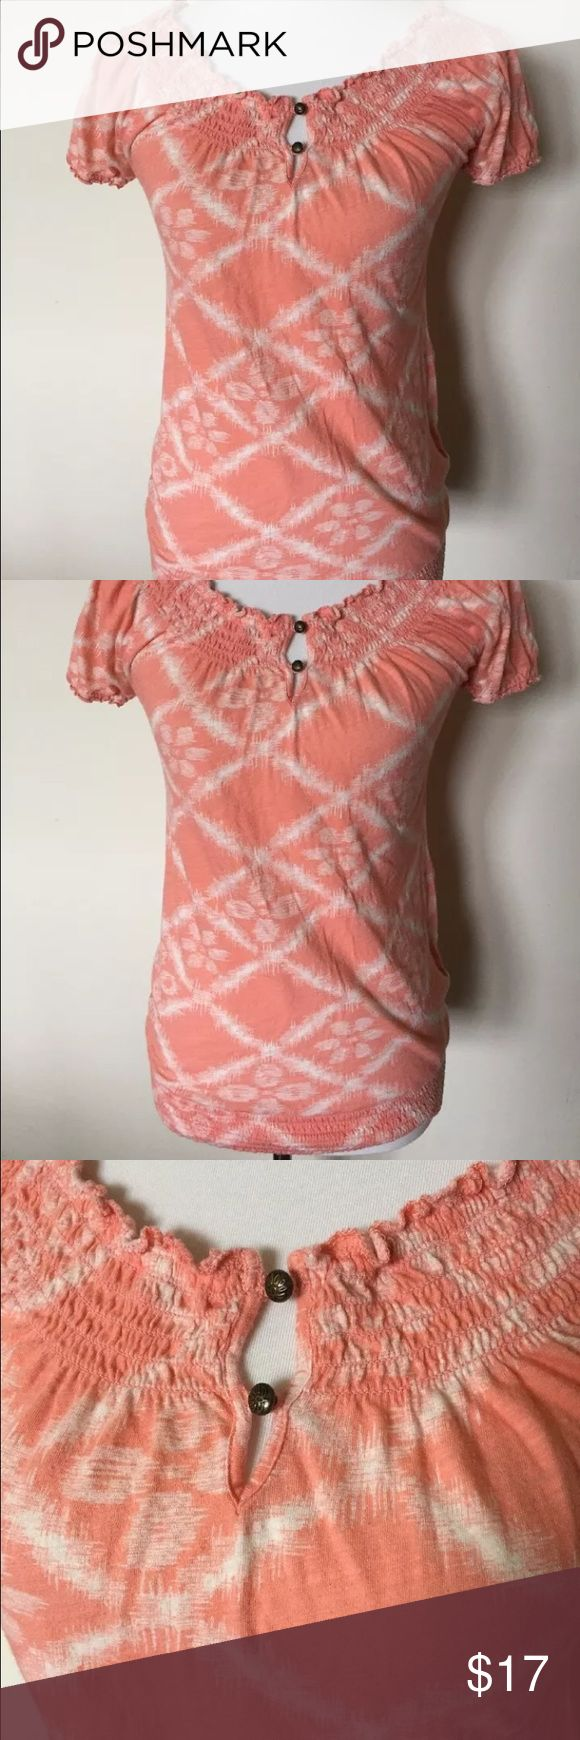 Lucky Brand Boho cinched top size XS Beautiful Boho style top by Lucky Brand. Cinching around a boat neck collar, adorned with two brass colored buttons, peach color with white Ikat like floral pattern, cinching at the waist. 100% cotton, size XS. Lucky Brand Tops Tees - Short Sleeve